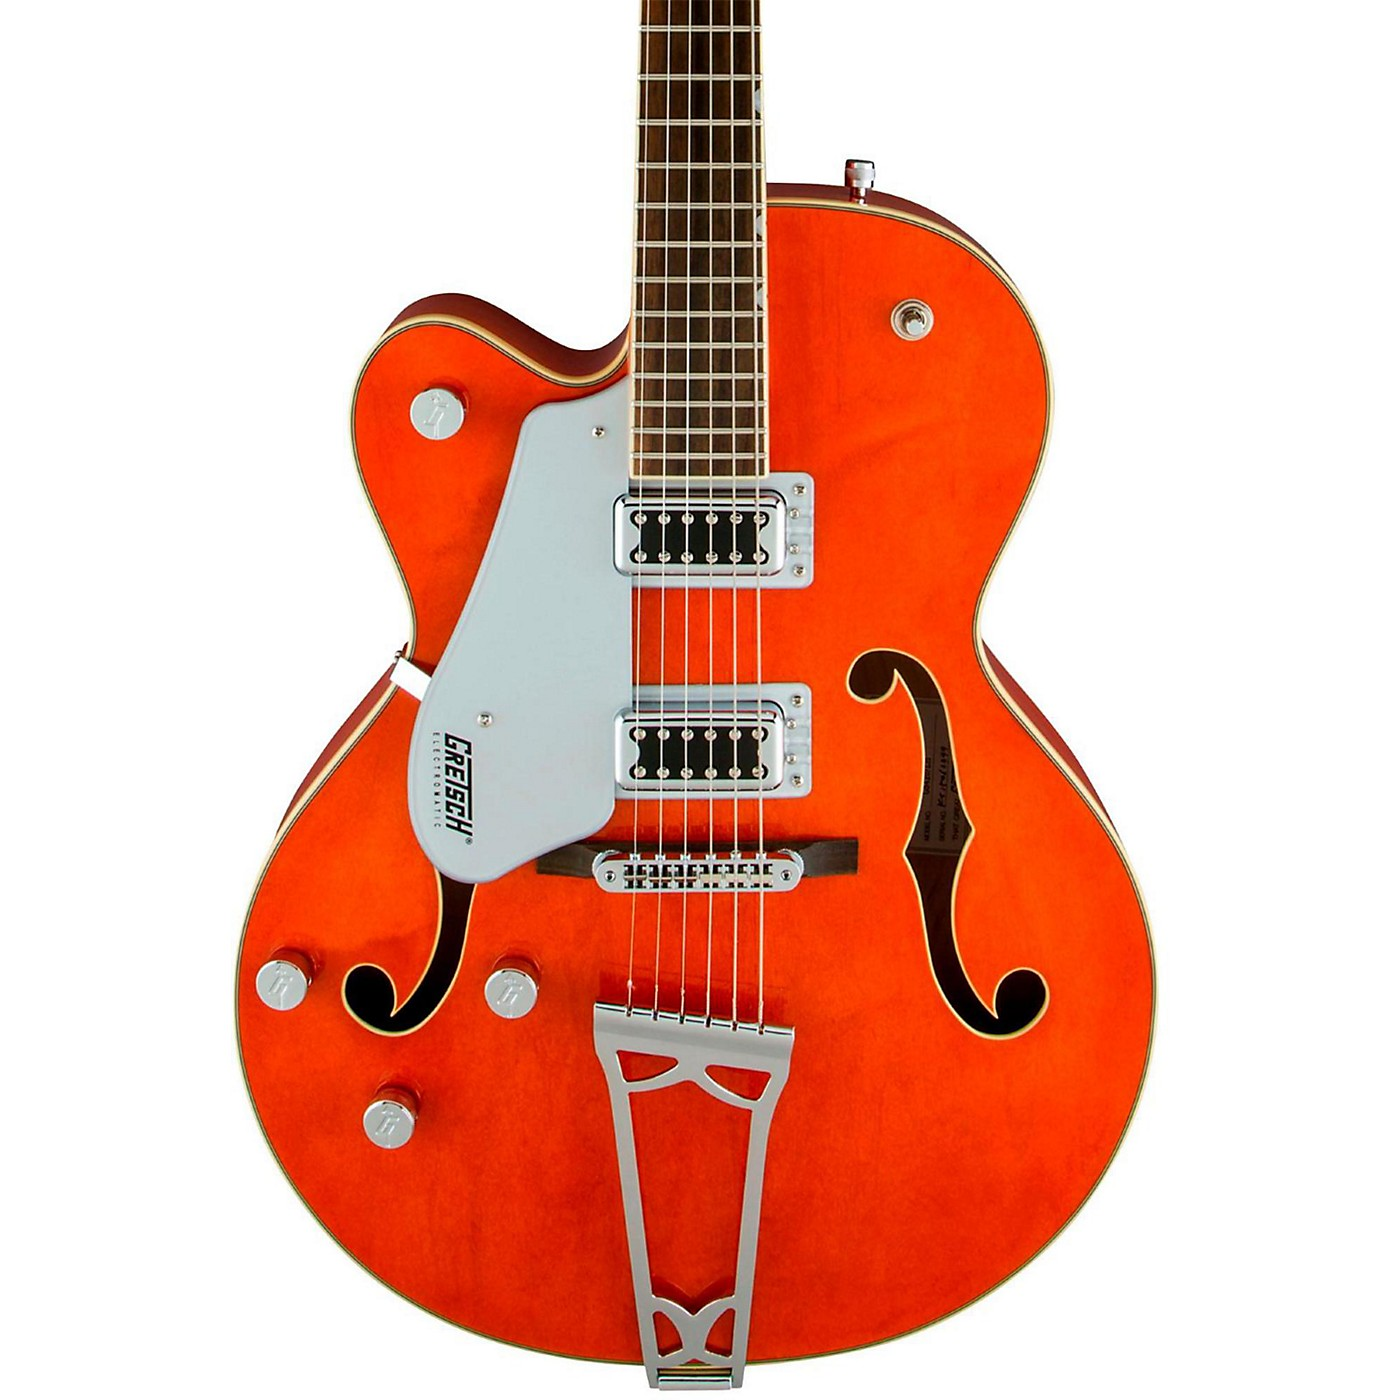 Gretsch Guitars G5420LH Electromatic Hollowbody Left Handed Electric Guitar thumbnail